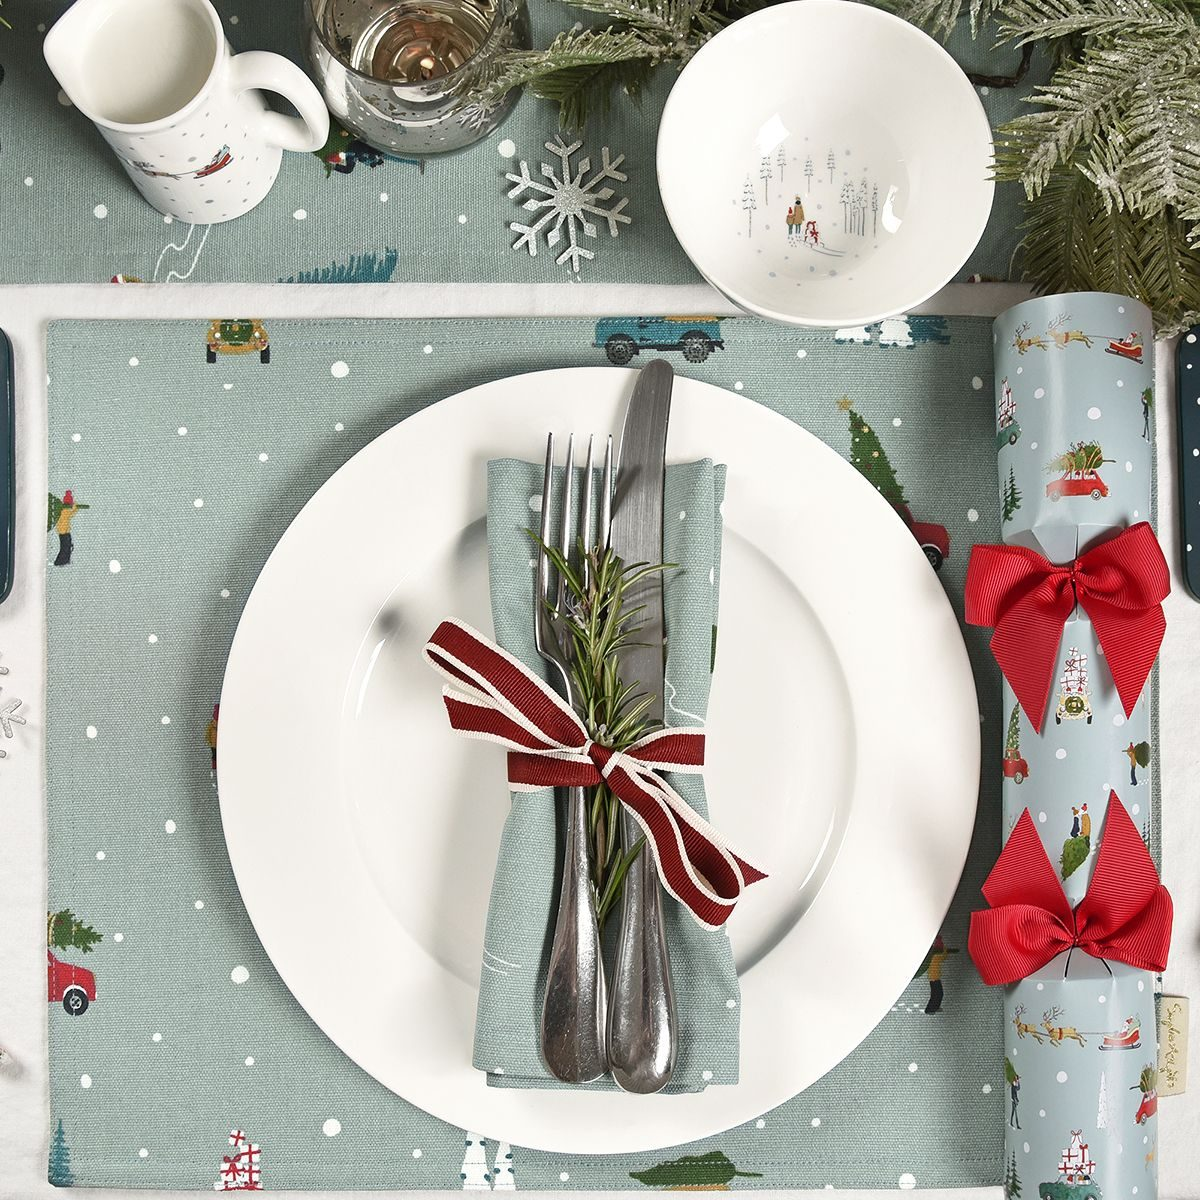 28sophie-allport-home-for-christmas-fabric-placemat-lifestyle-1200x1200.jpg